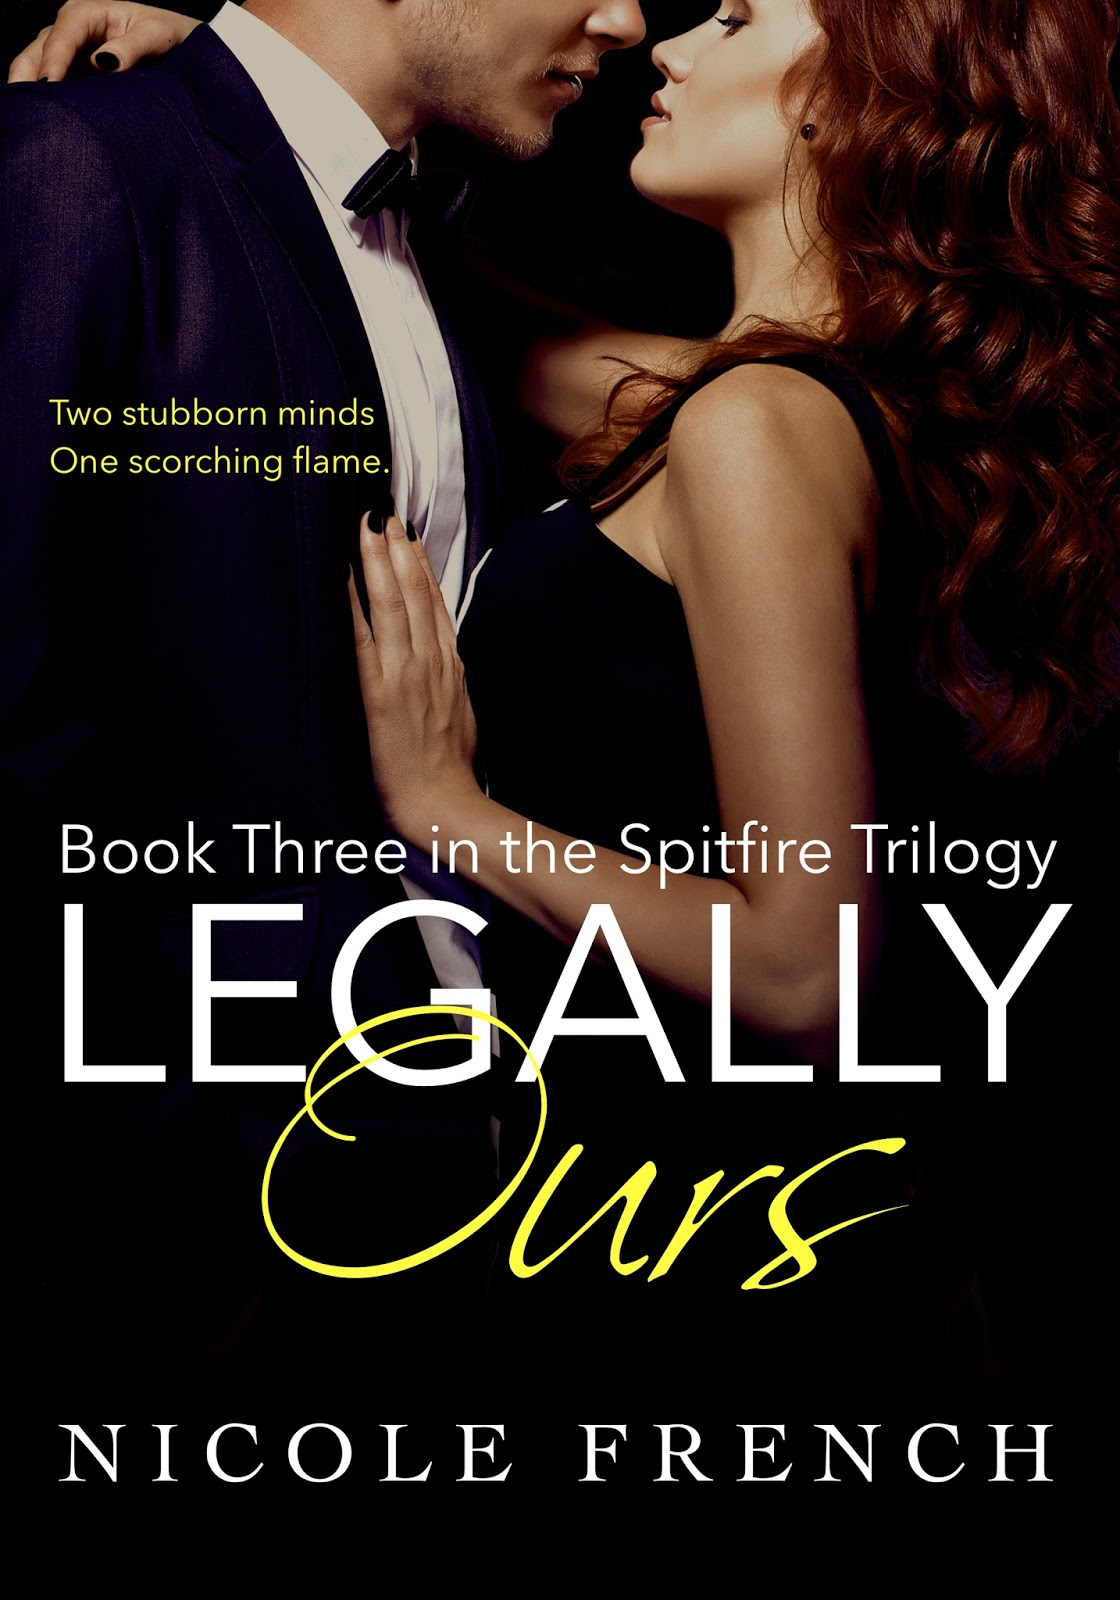 Title: Legally Ours